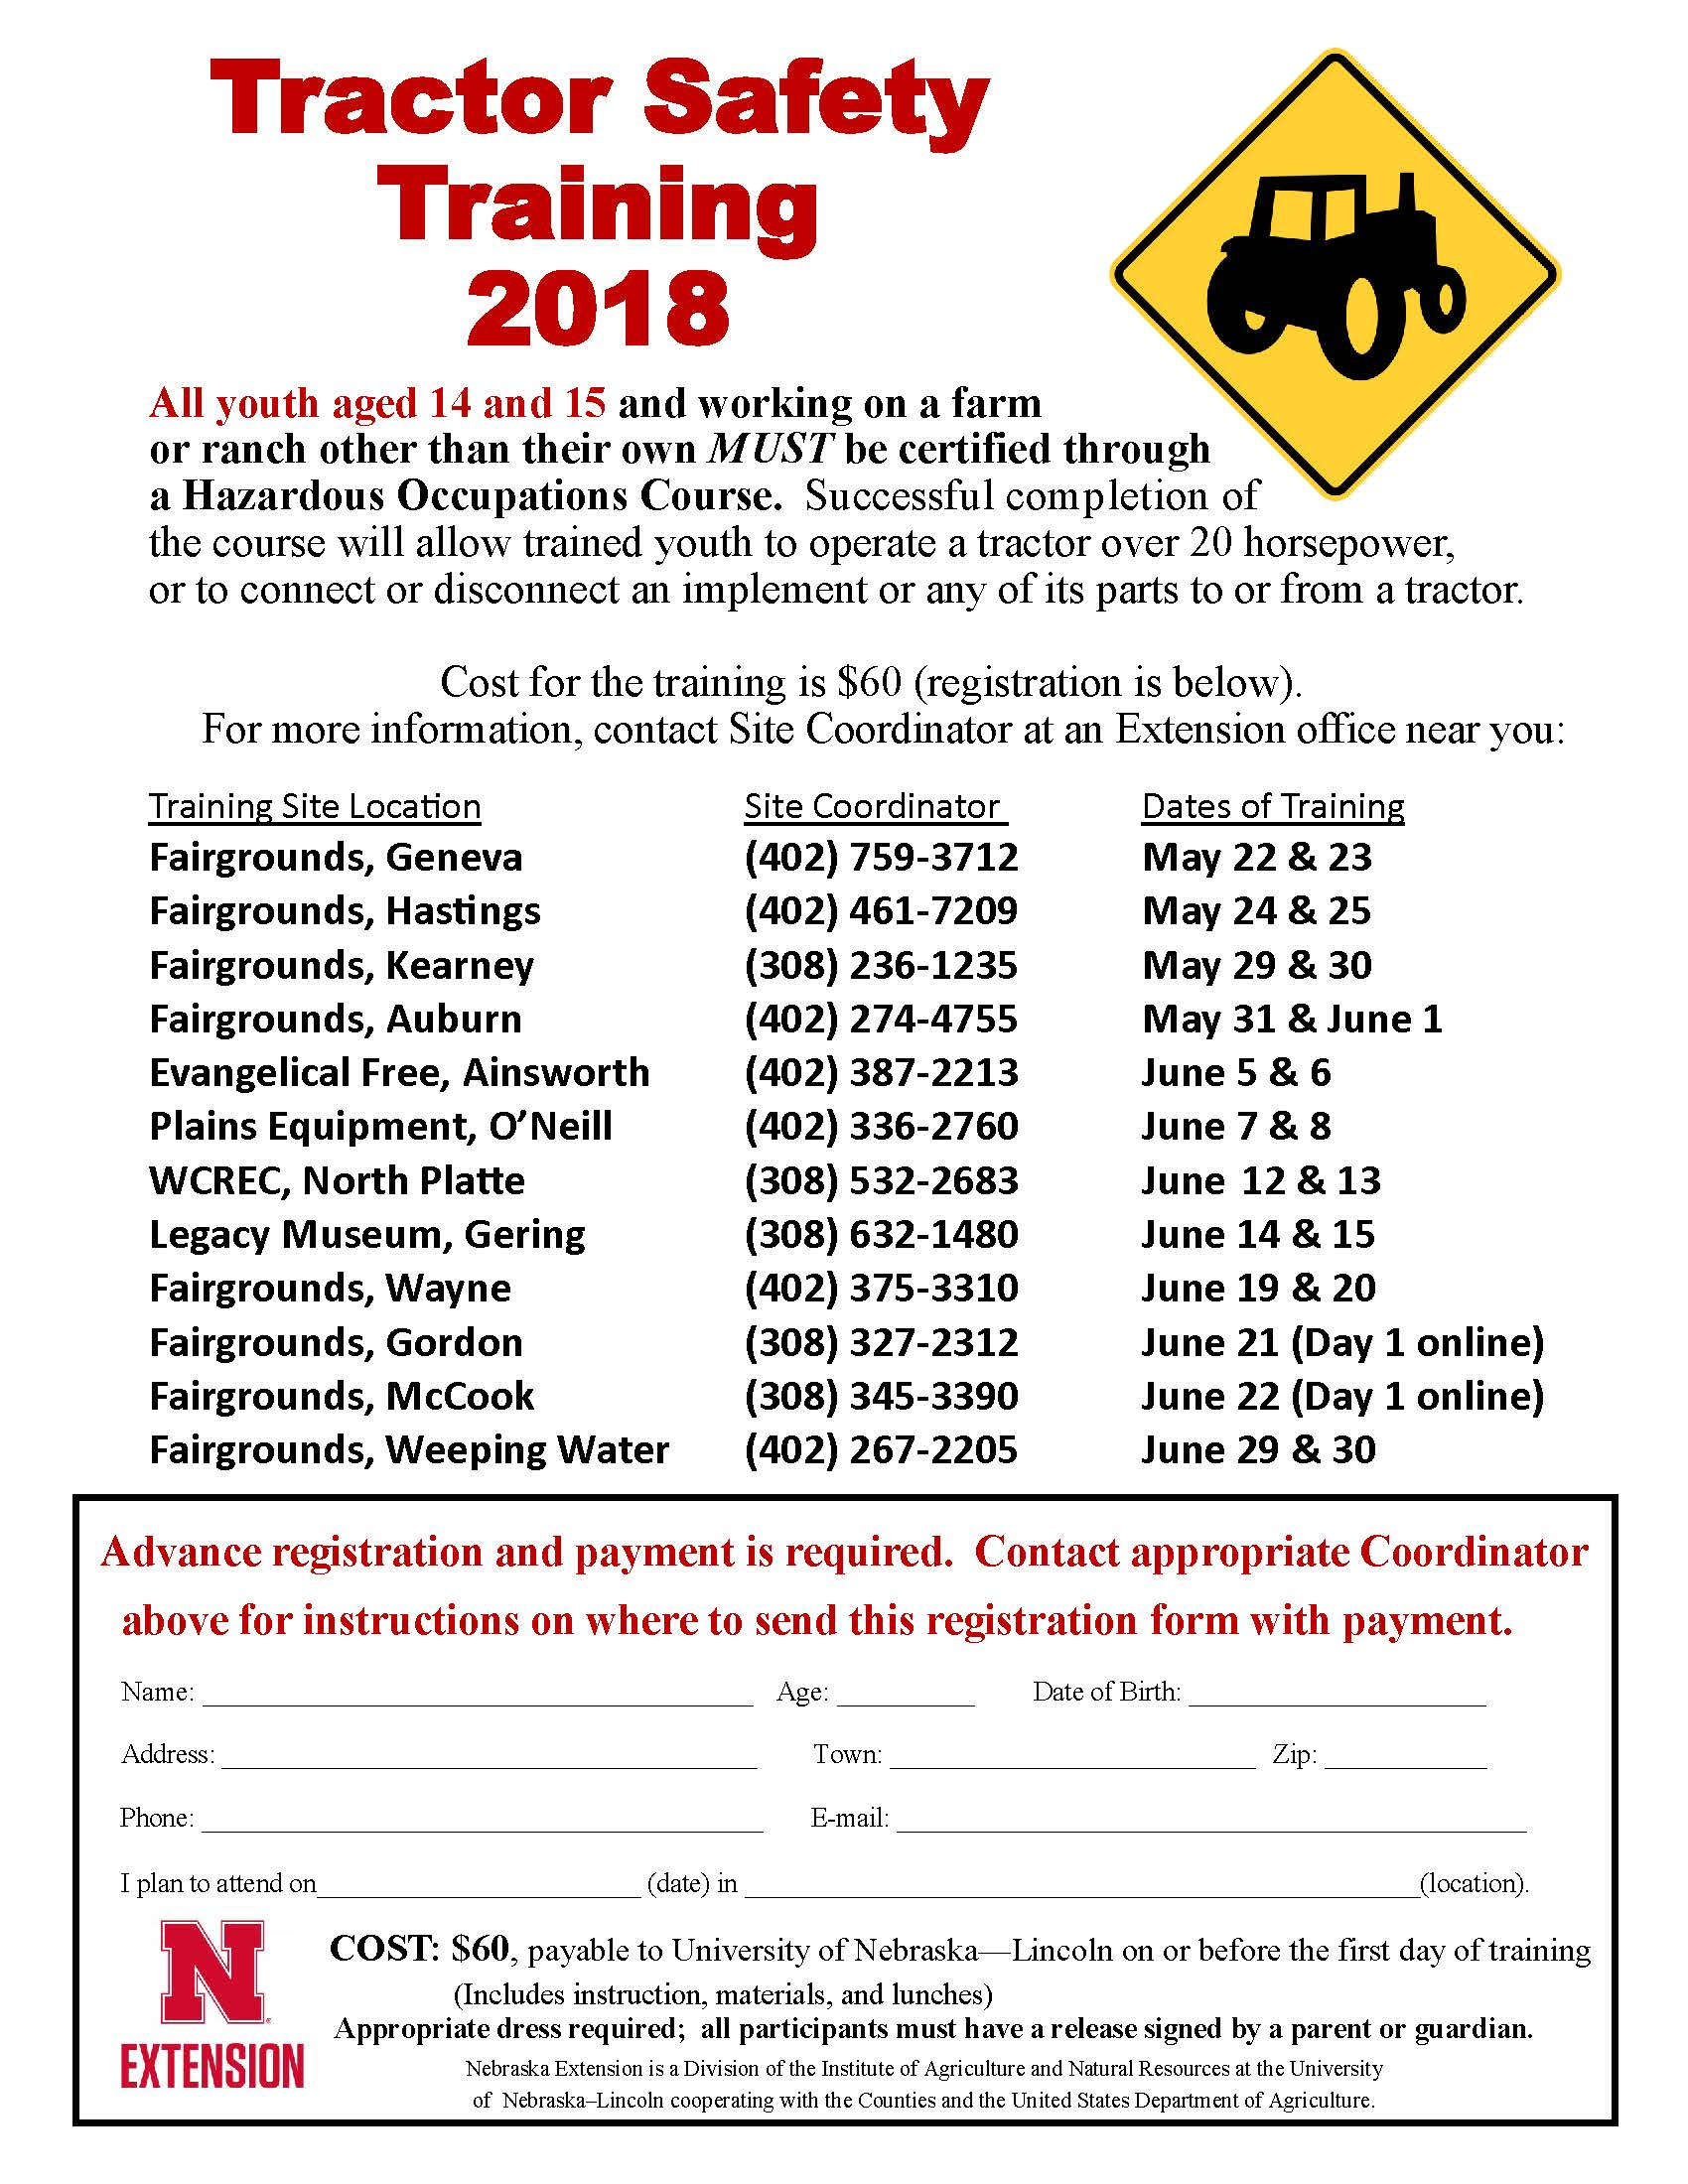 Tractor Safety Flier 2018 1